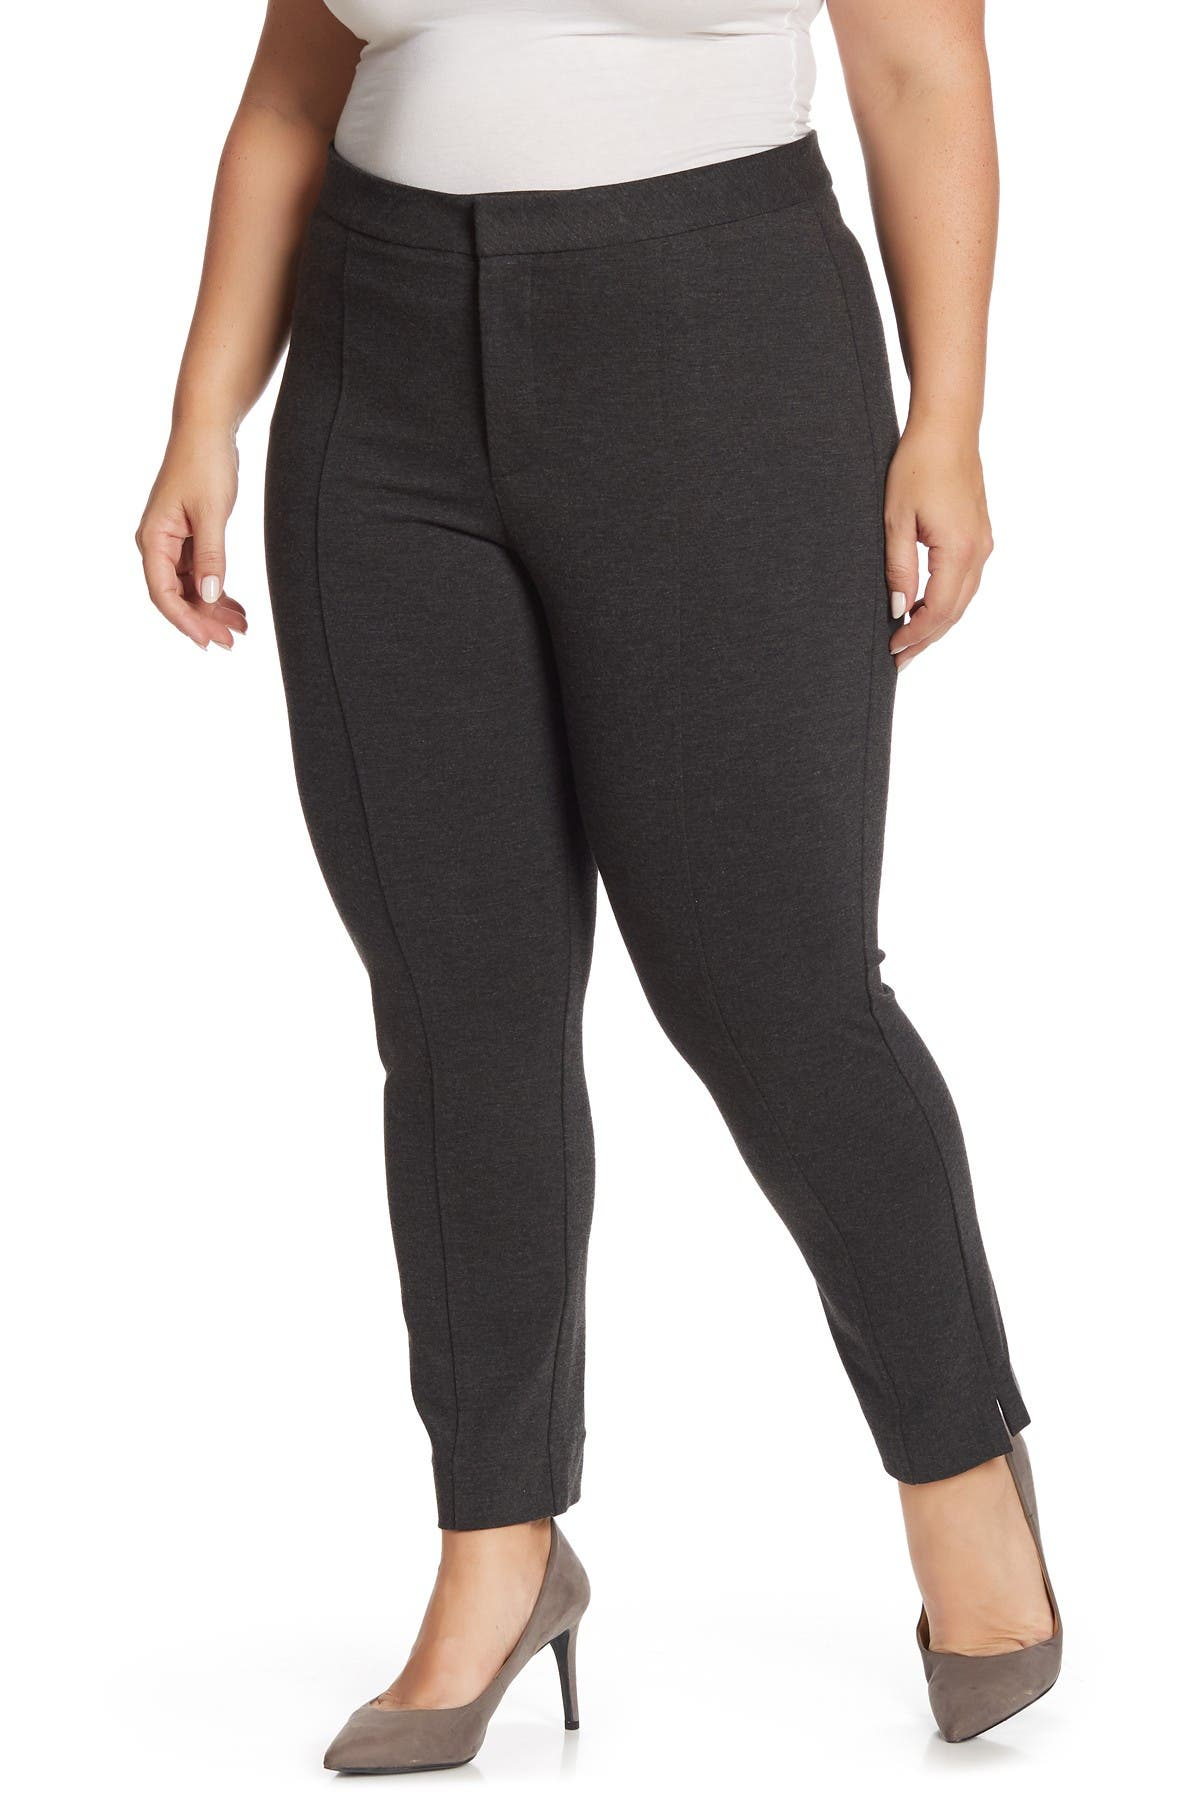 Image of NYDJ Stretch Ankle Pants